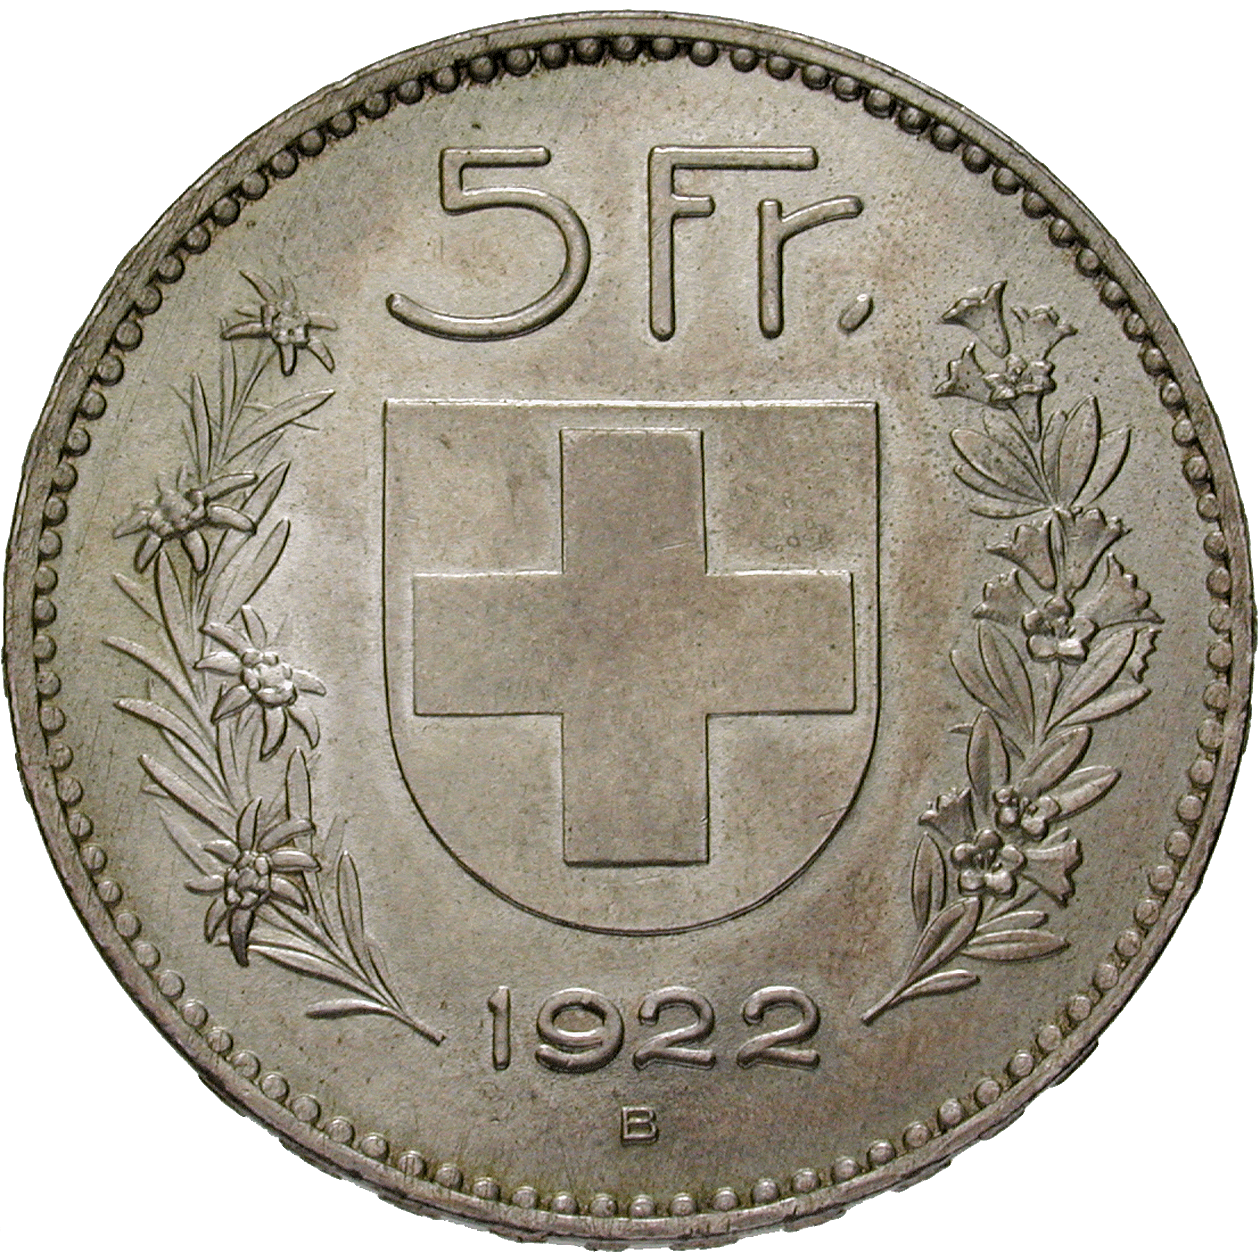 Swiss Confederation, 5 Francs 1922 (reverse)